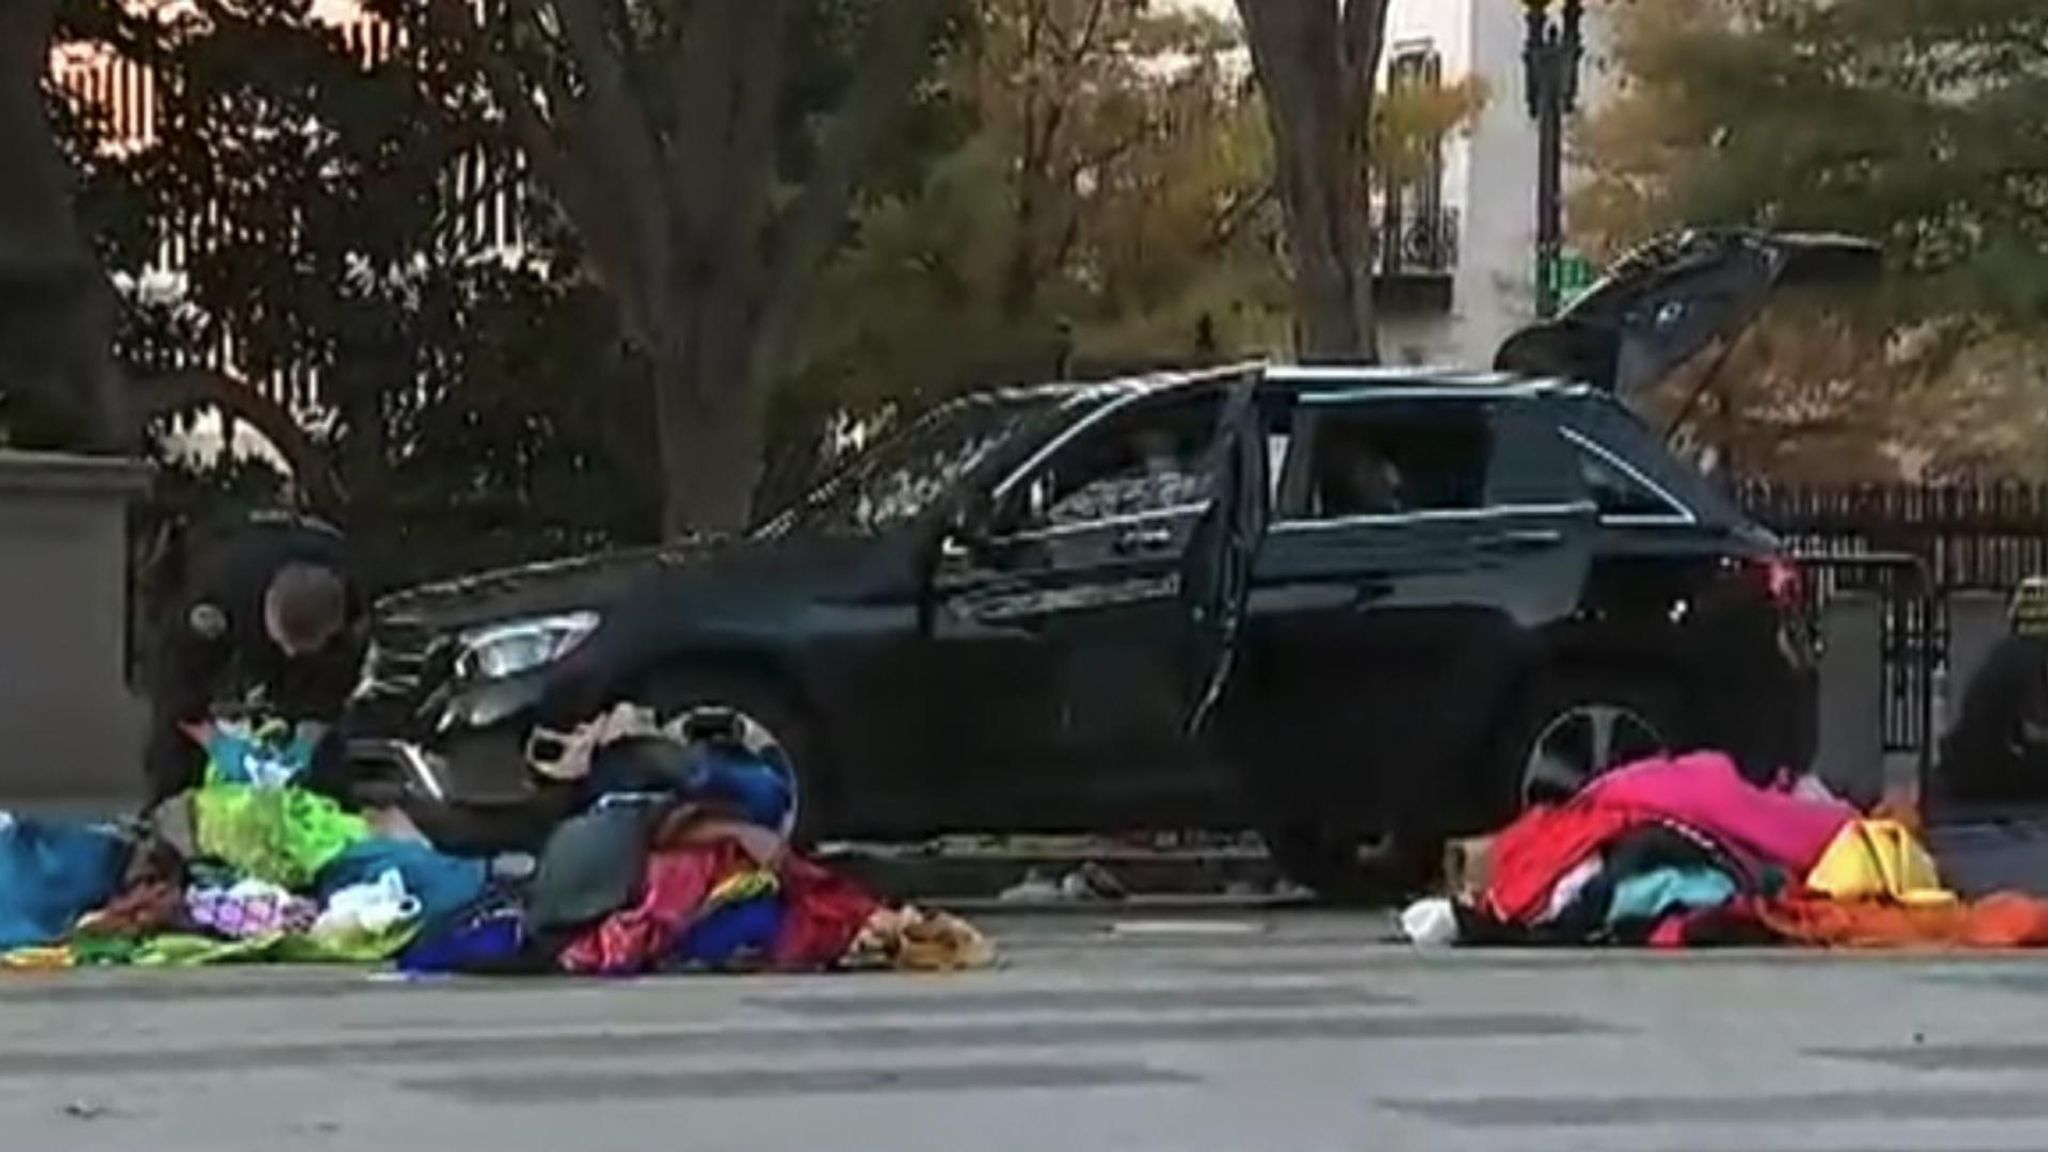 White House Suspicious Vehicle Tried To Enter Complex Says